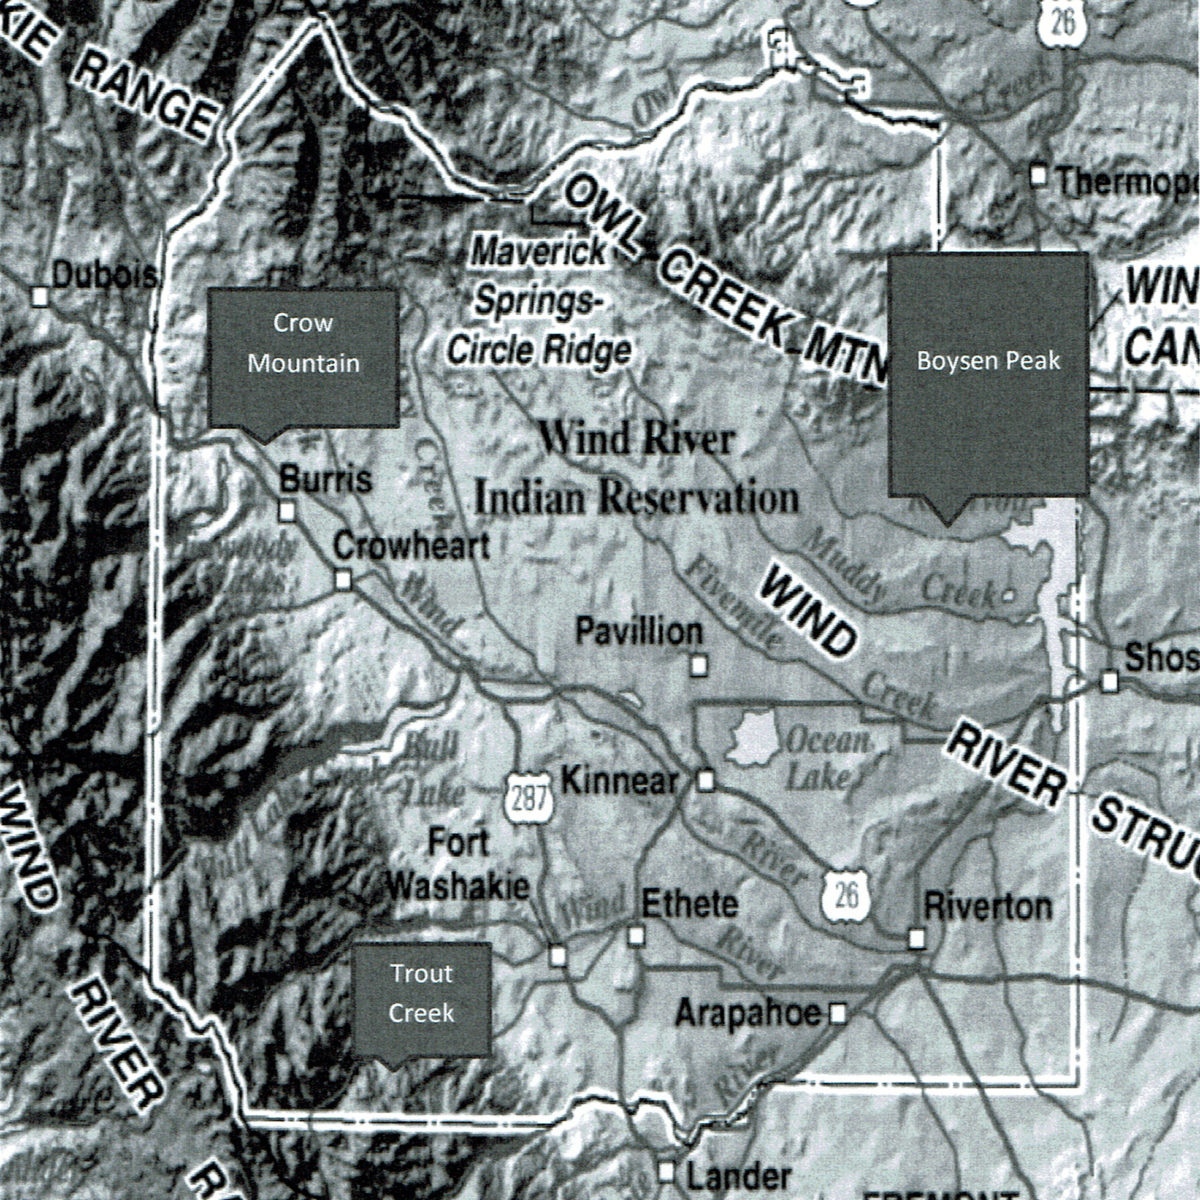 Wind River Indian Reservation map for eclipse